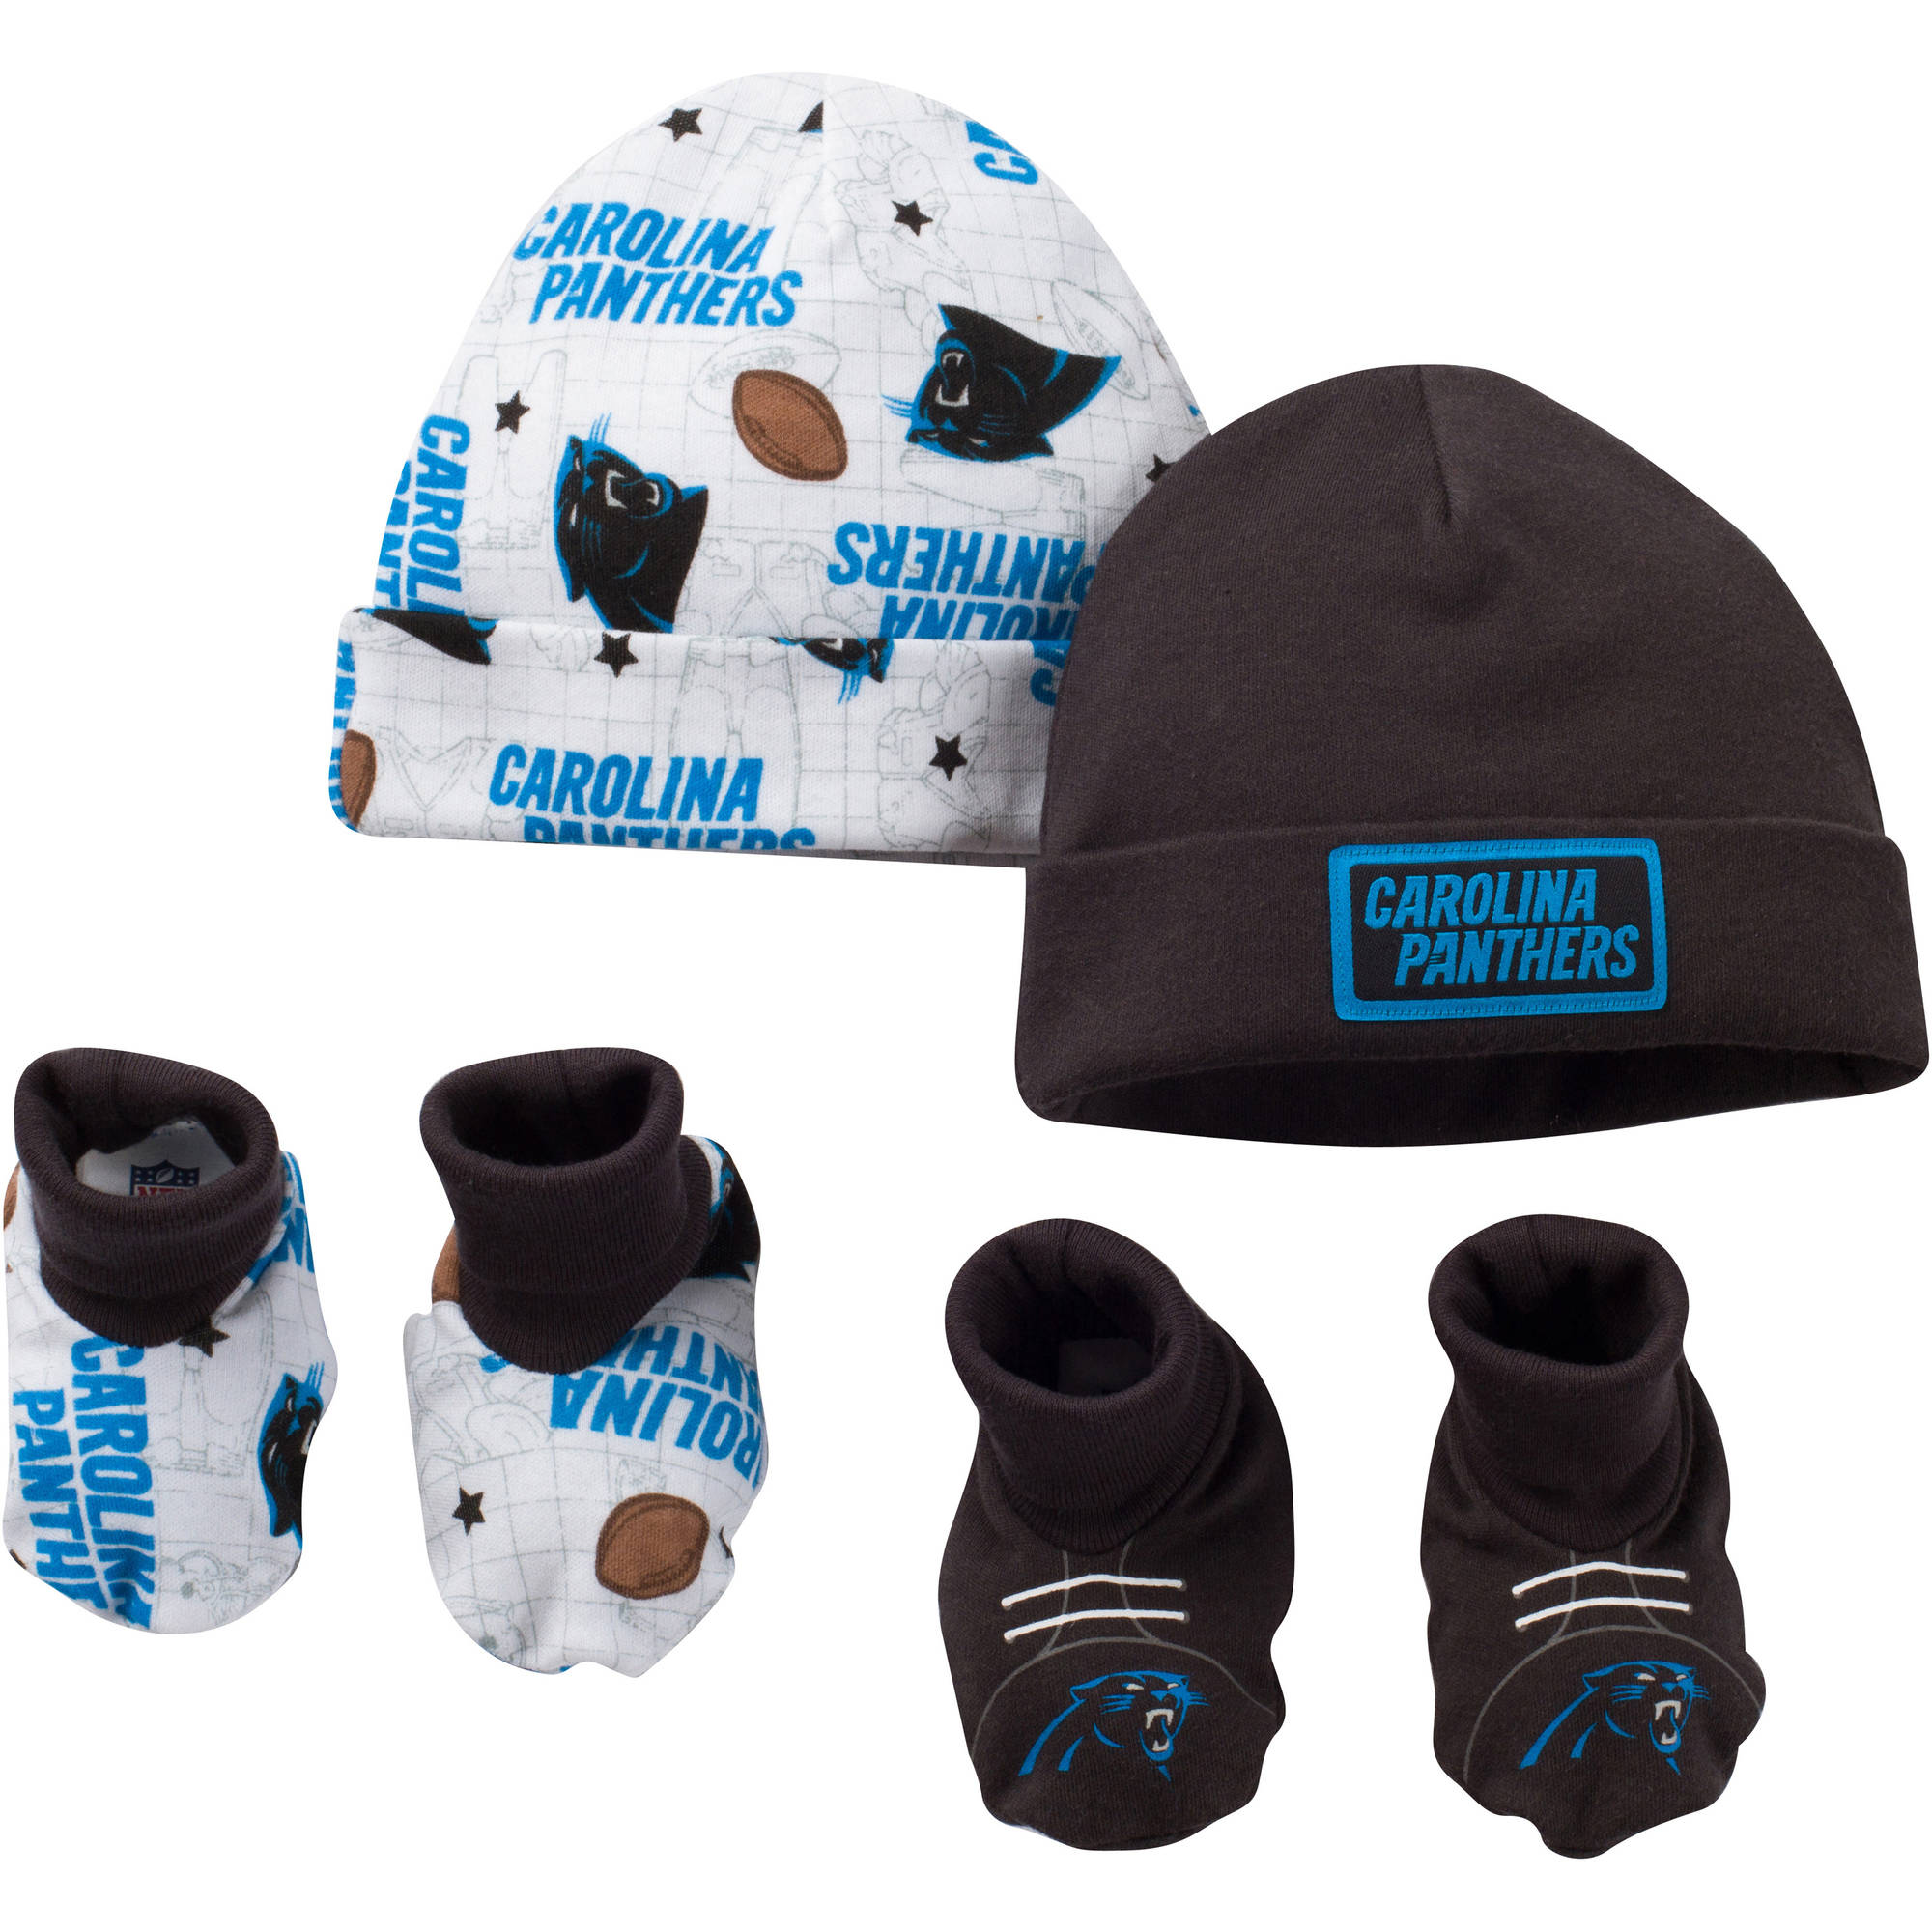 NFL Carolina Panthers Baby Boys Accessory Set, 2 Caps and 2 Booties, 4-Piece